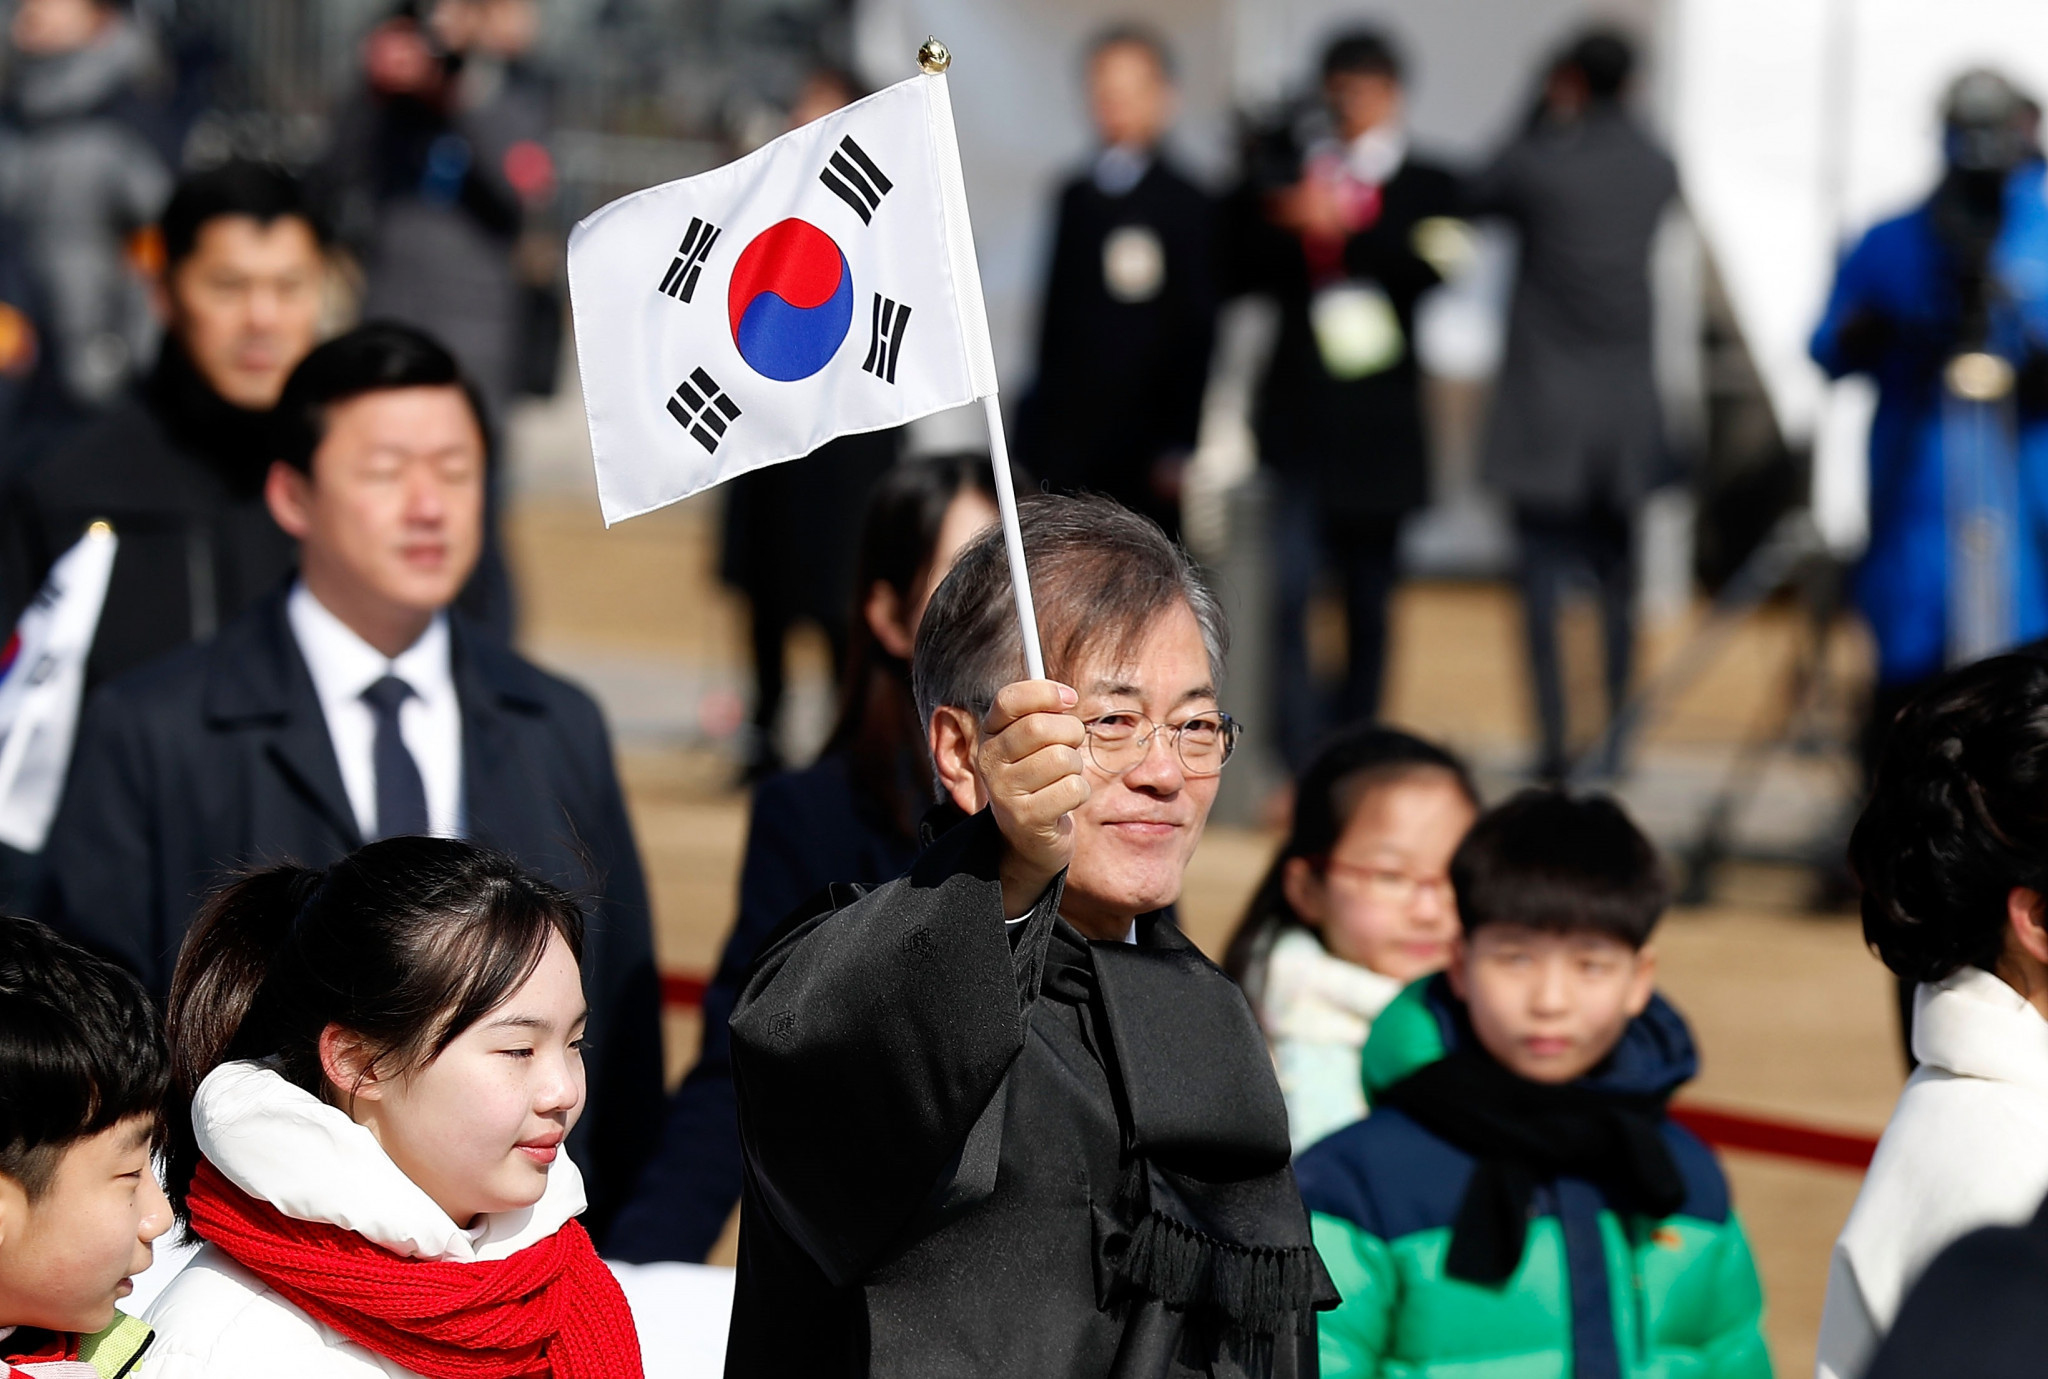 South Korean President Moon Jae-in was among those in attendance at the unveiling of the country's team for the Pyeongchang 2018 Winter Paralympics ©Getty Images